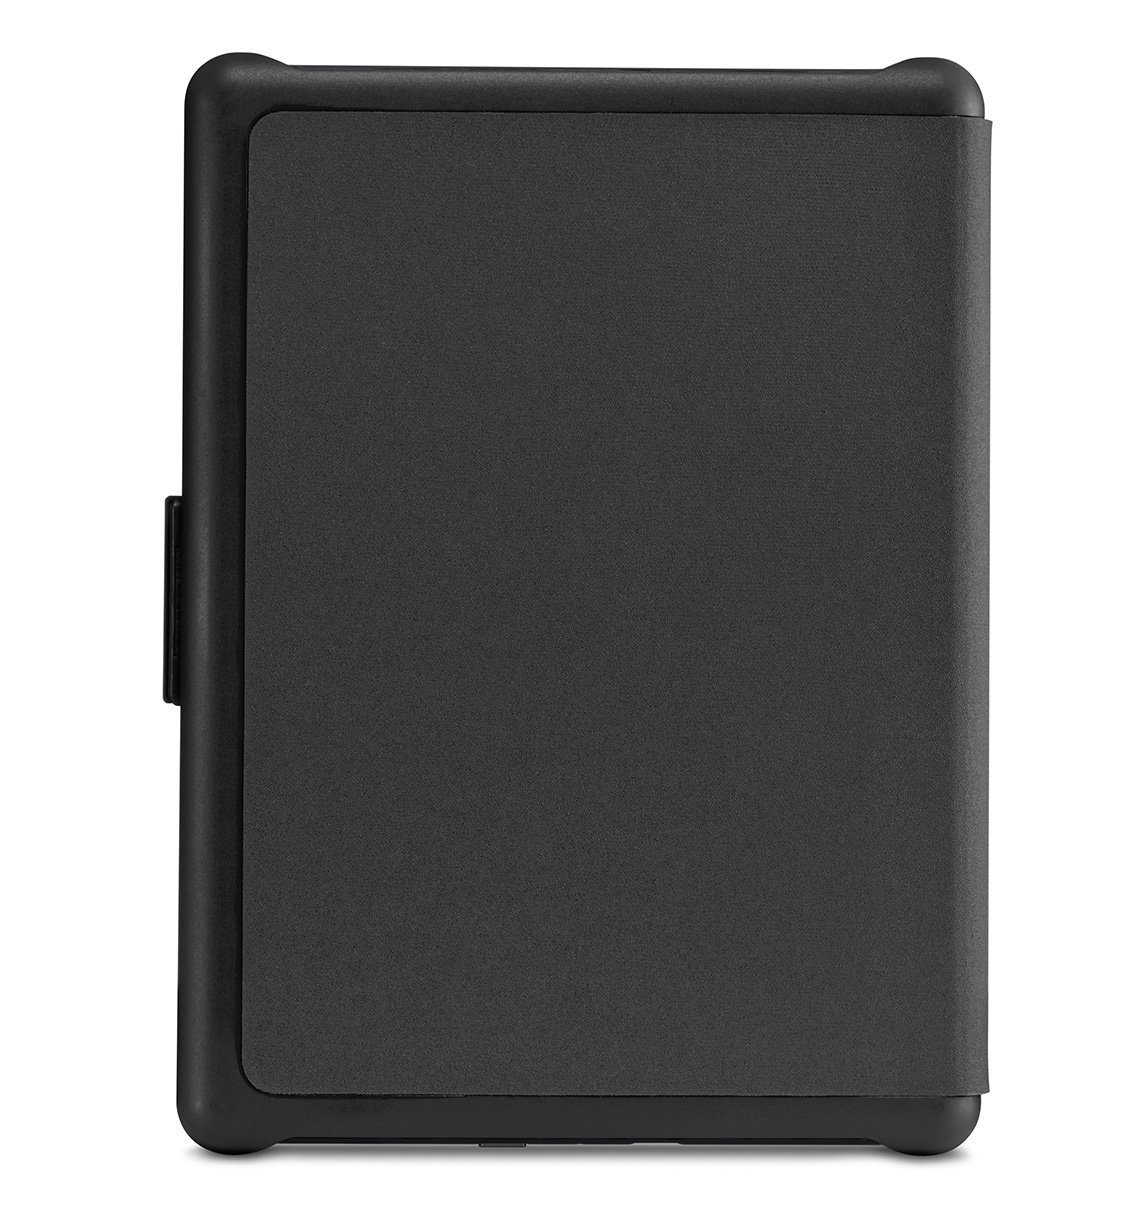 Чехол обложка Amazon Cover Case for All-New Kindle 8 (2016) Black. Фото N3